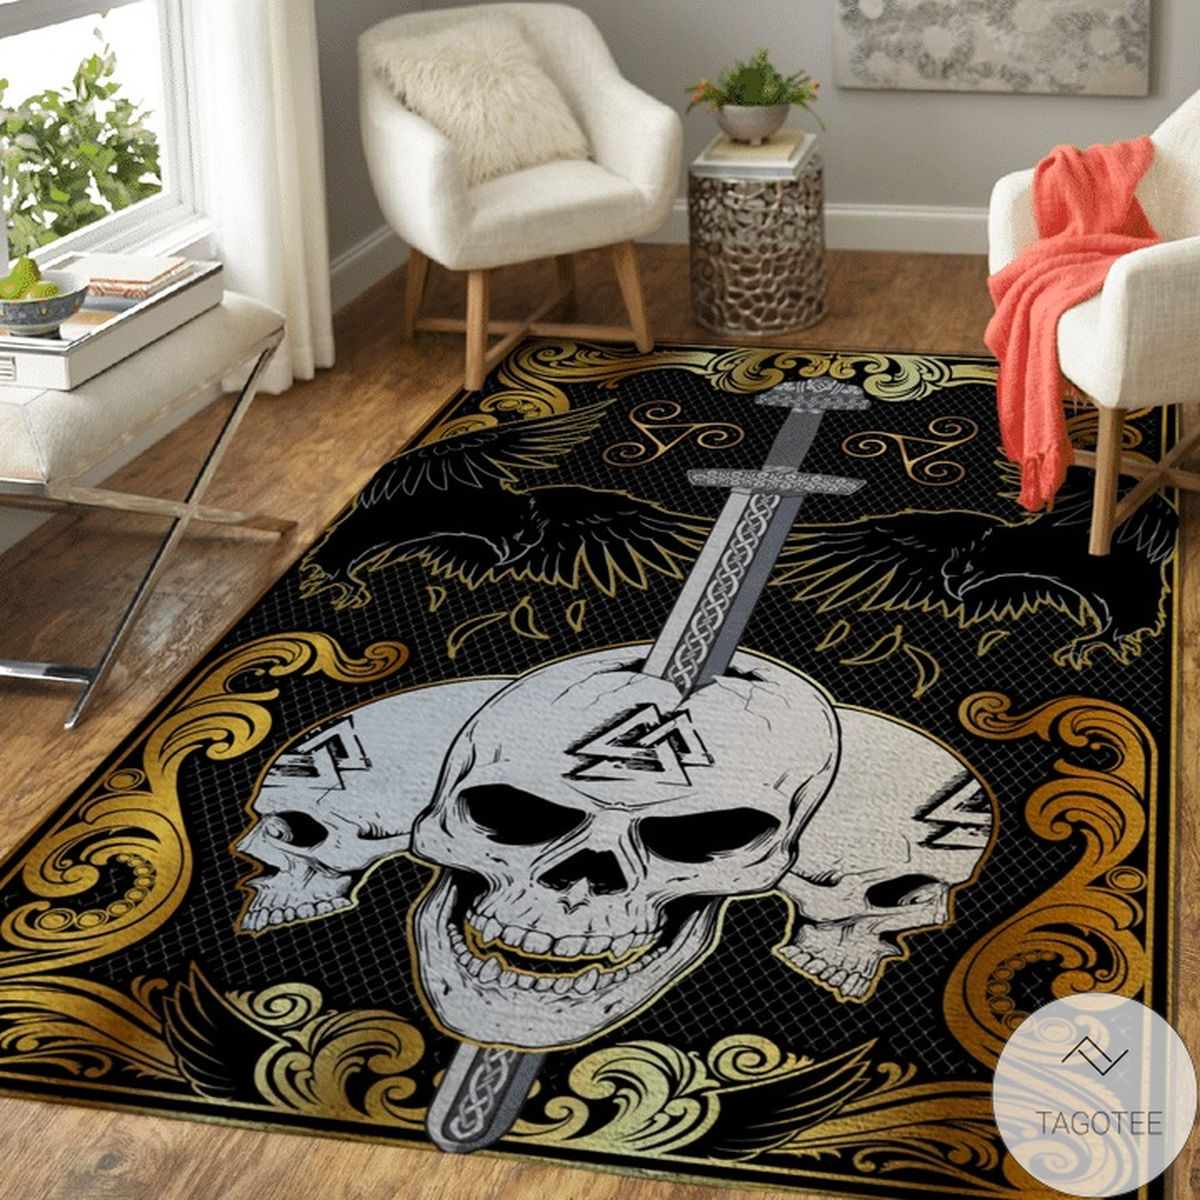 Mother's Day Gift The Ulfberht Sword Embedded In The Skulls - Viking Area Rug